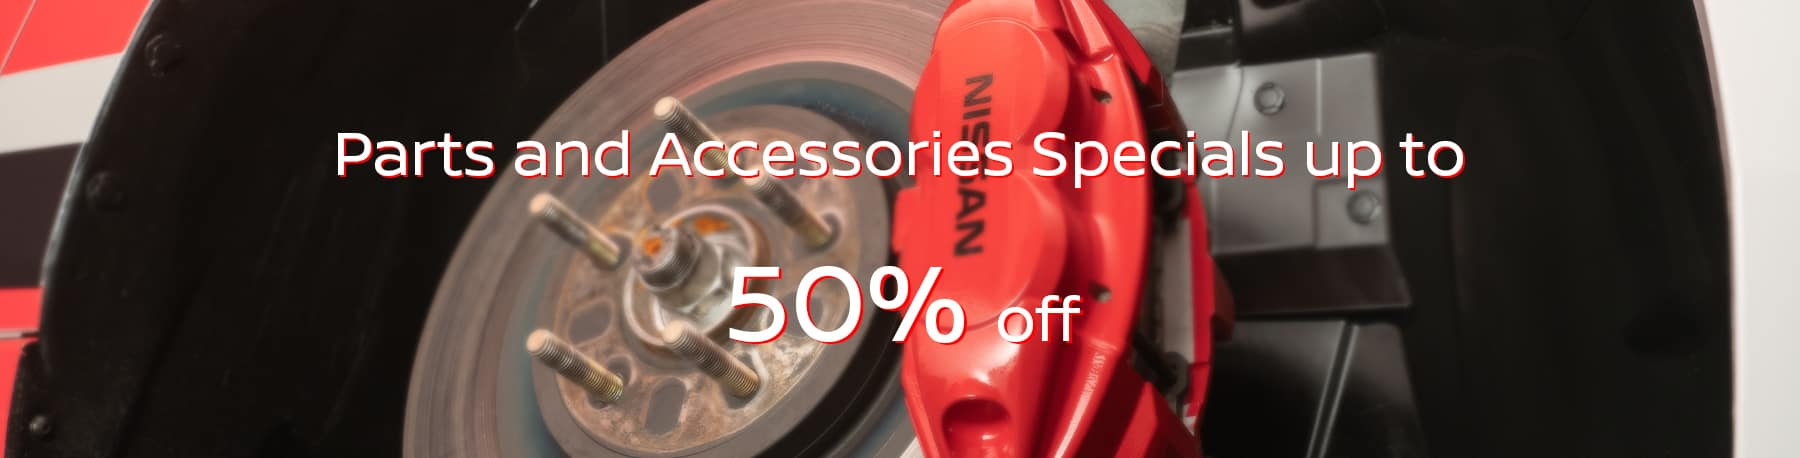 parts and sccessories specials